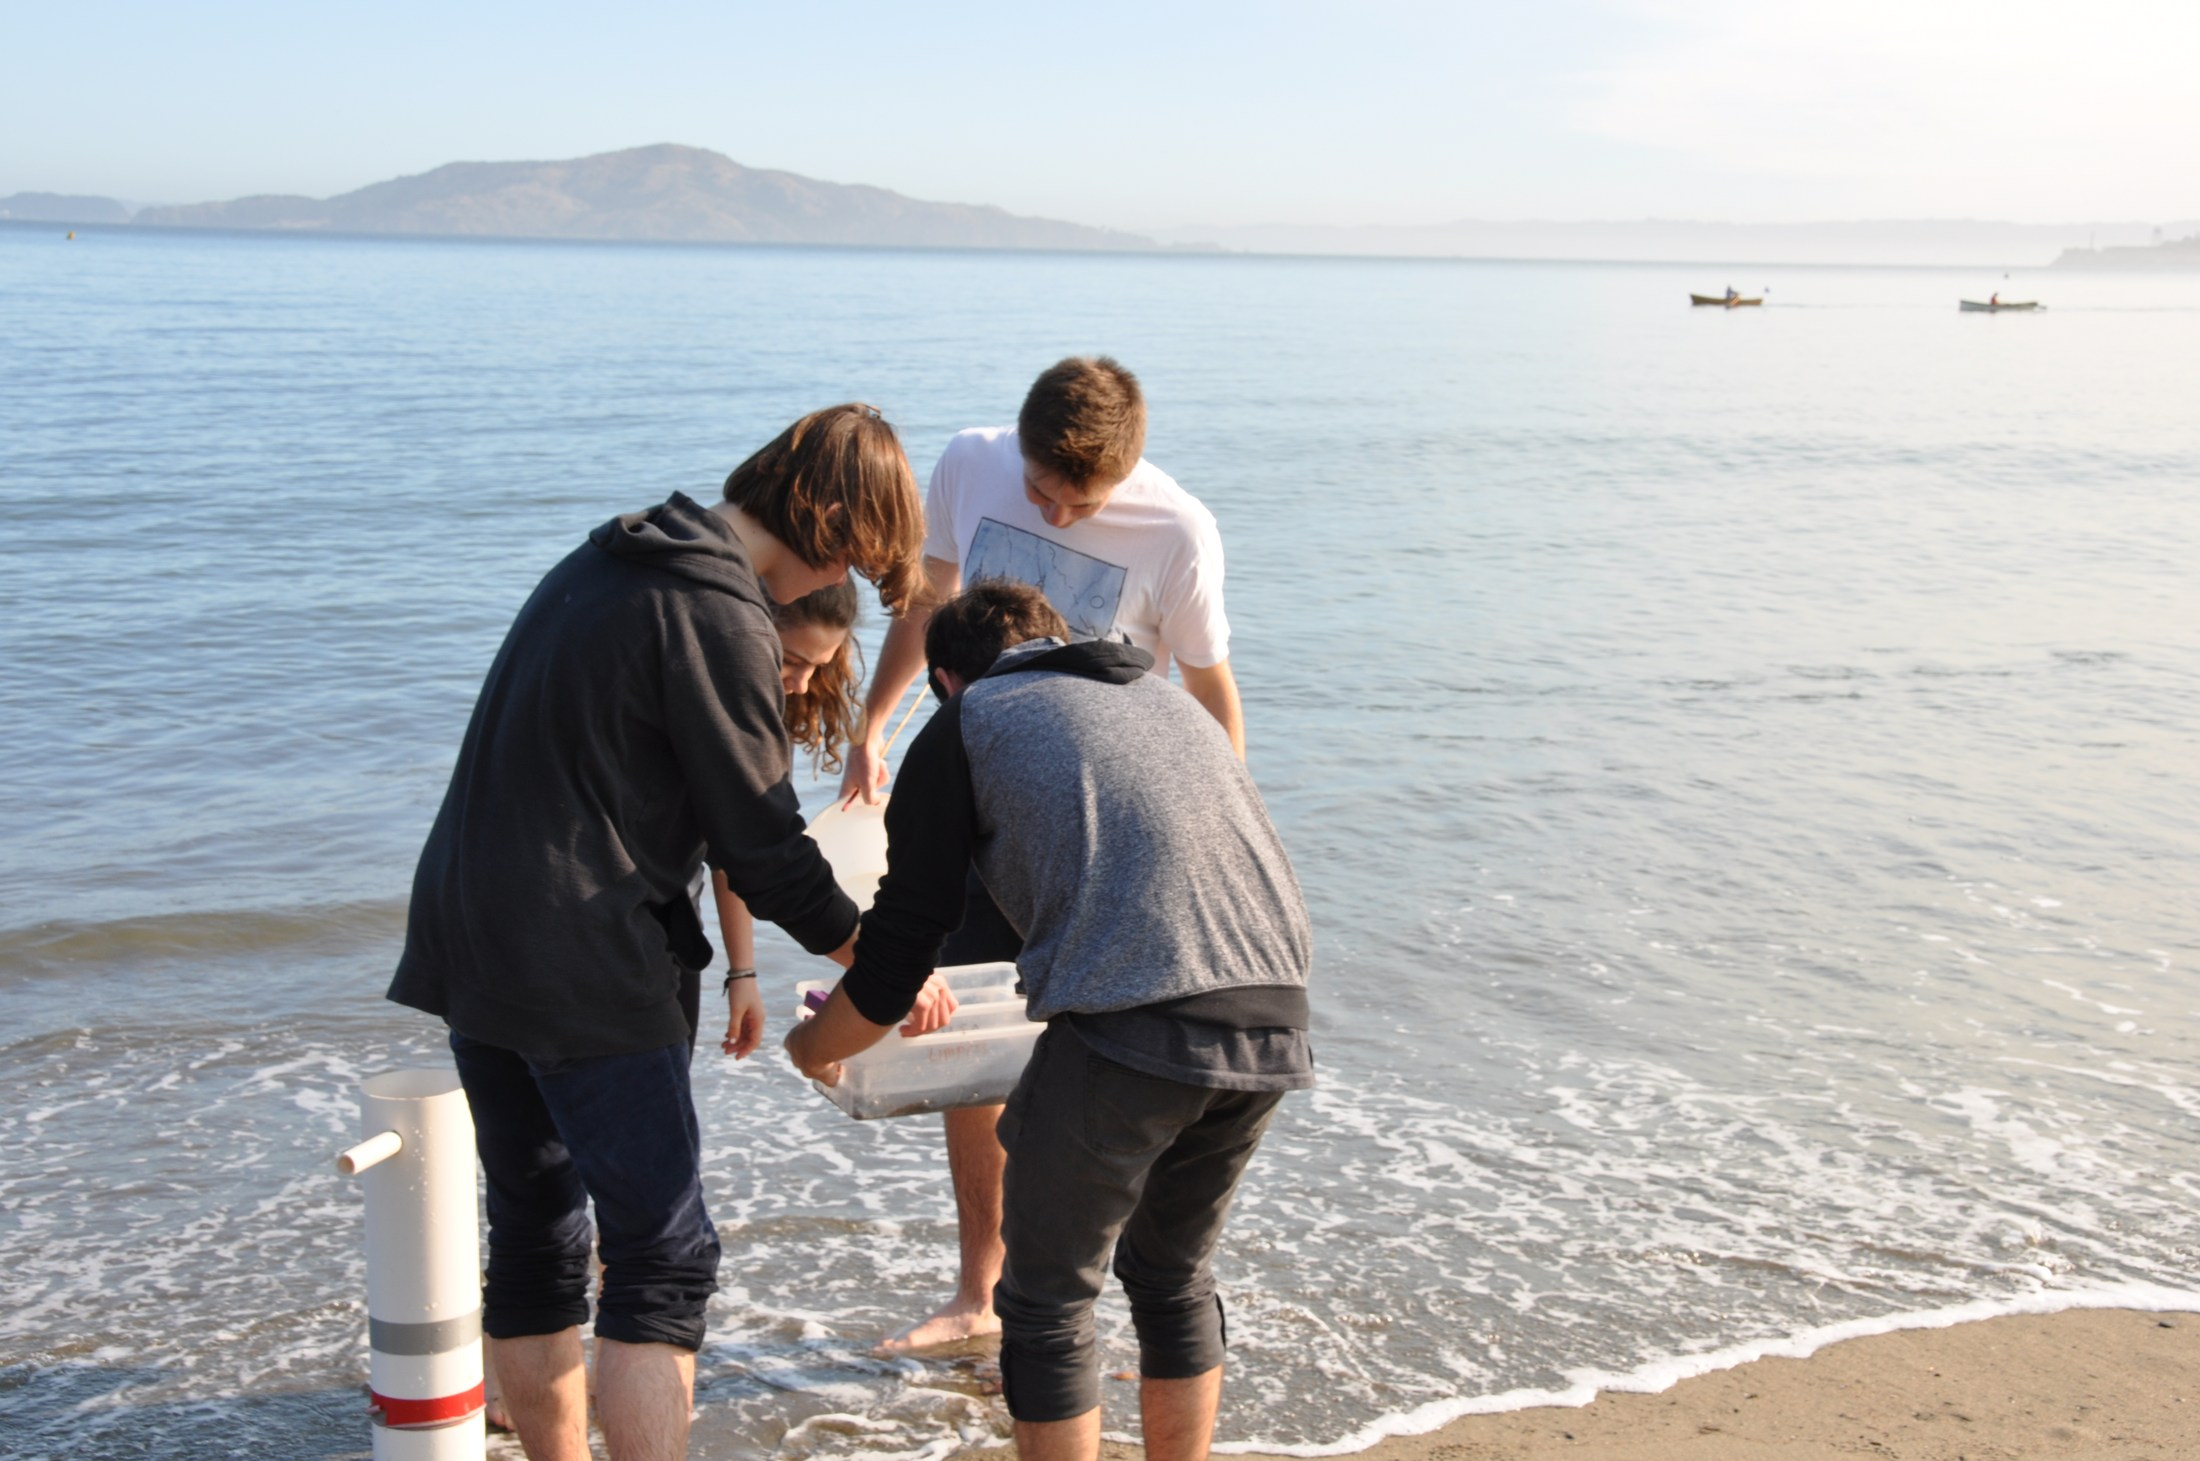 Student's at Chrissy Field searching for mole crabs.